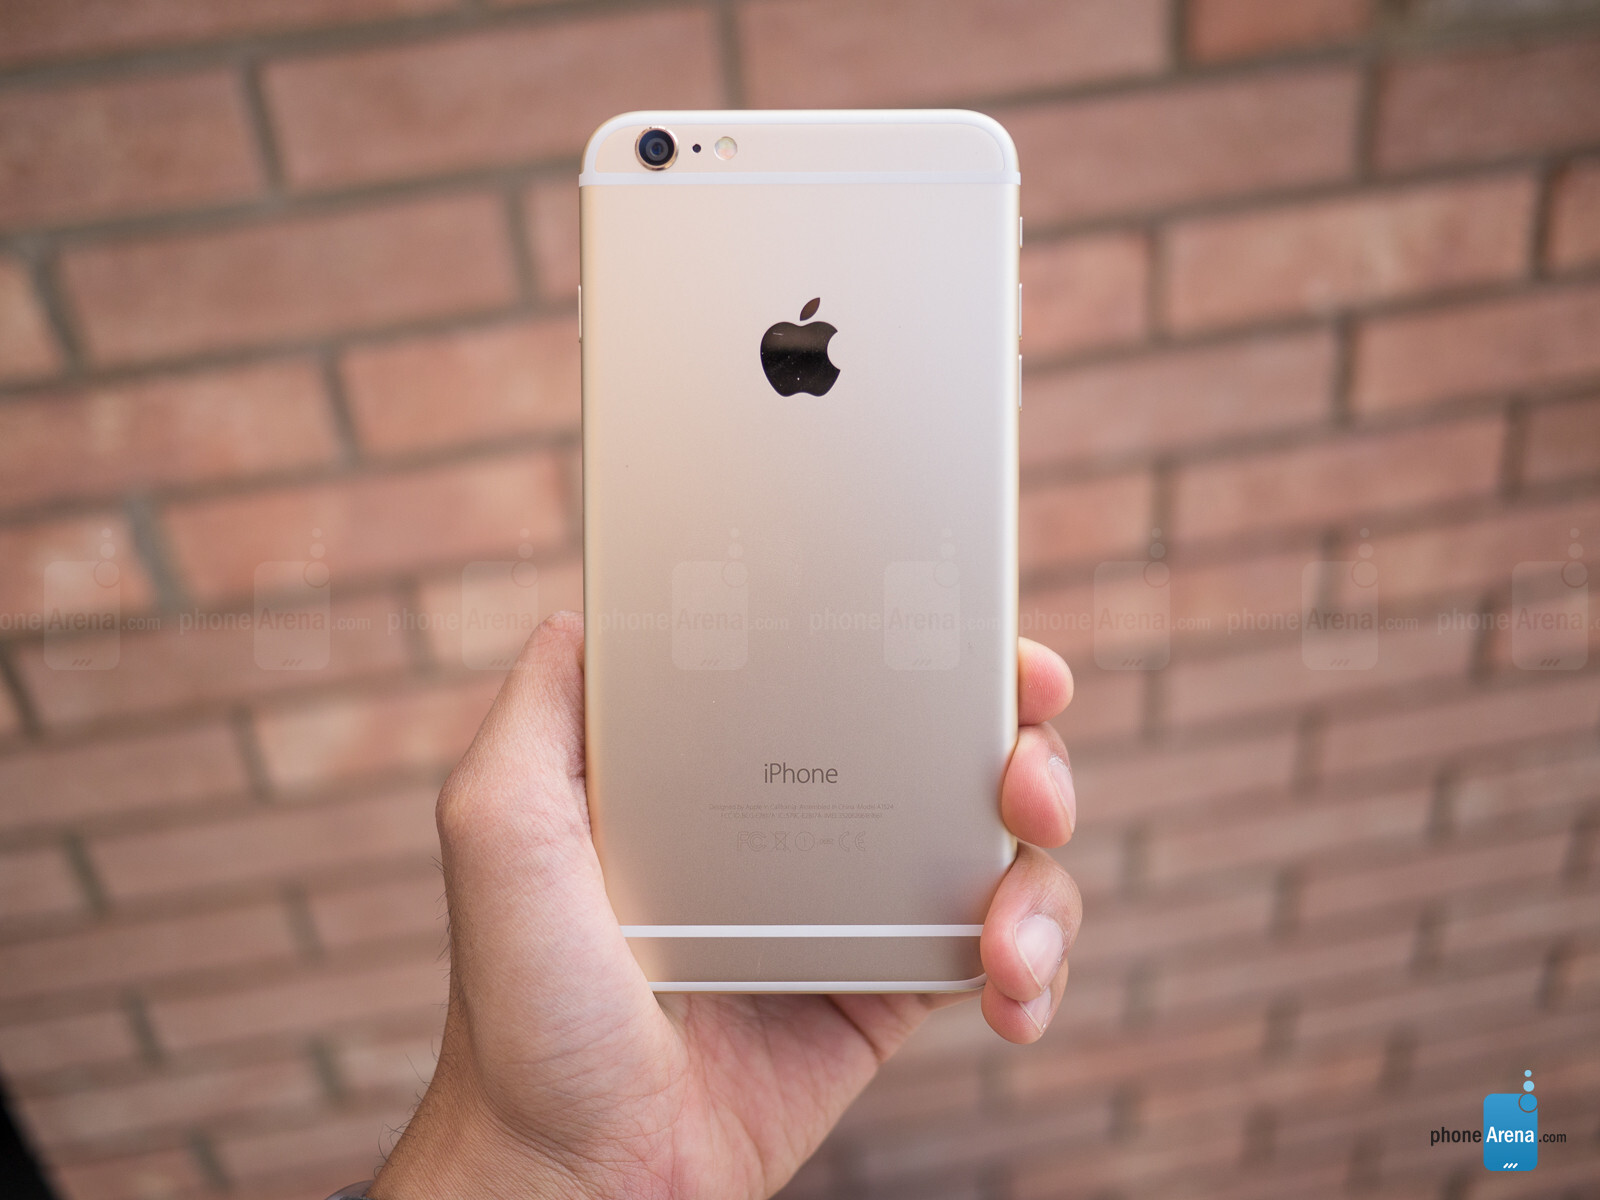 Apple starts selling the iPhone 6 and iPhone 6 Plus in 22 ...